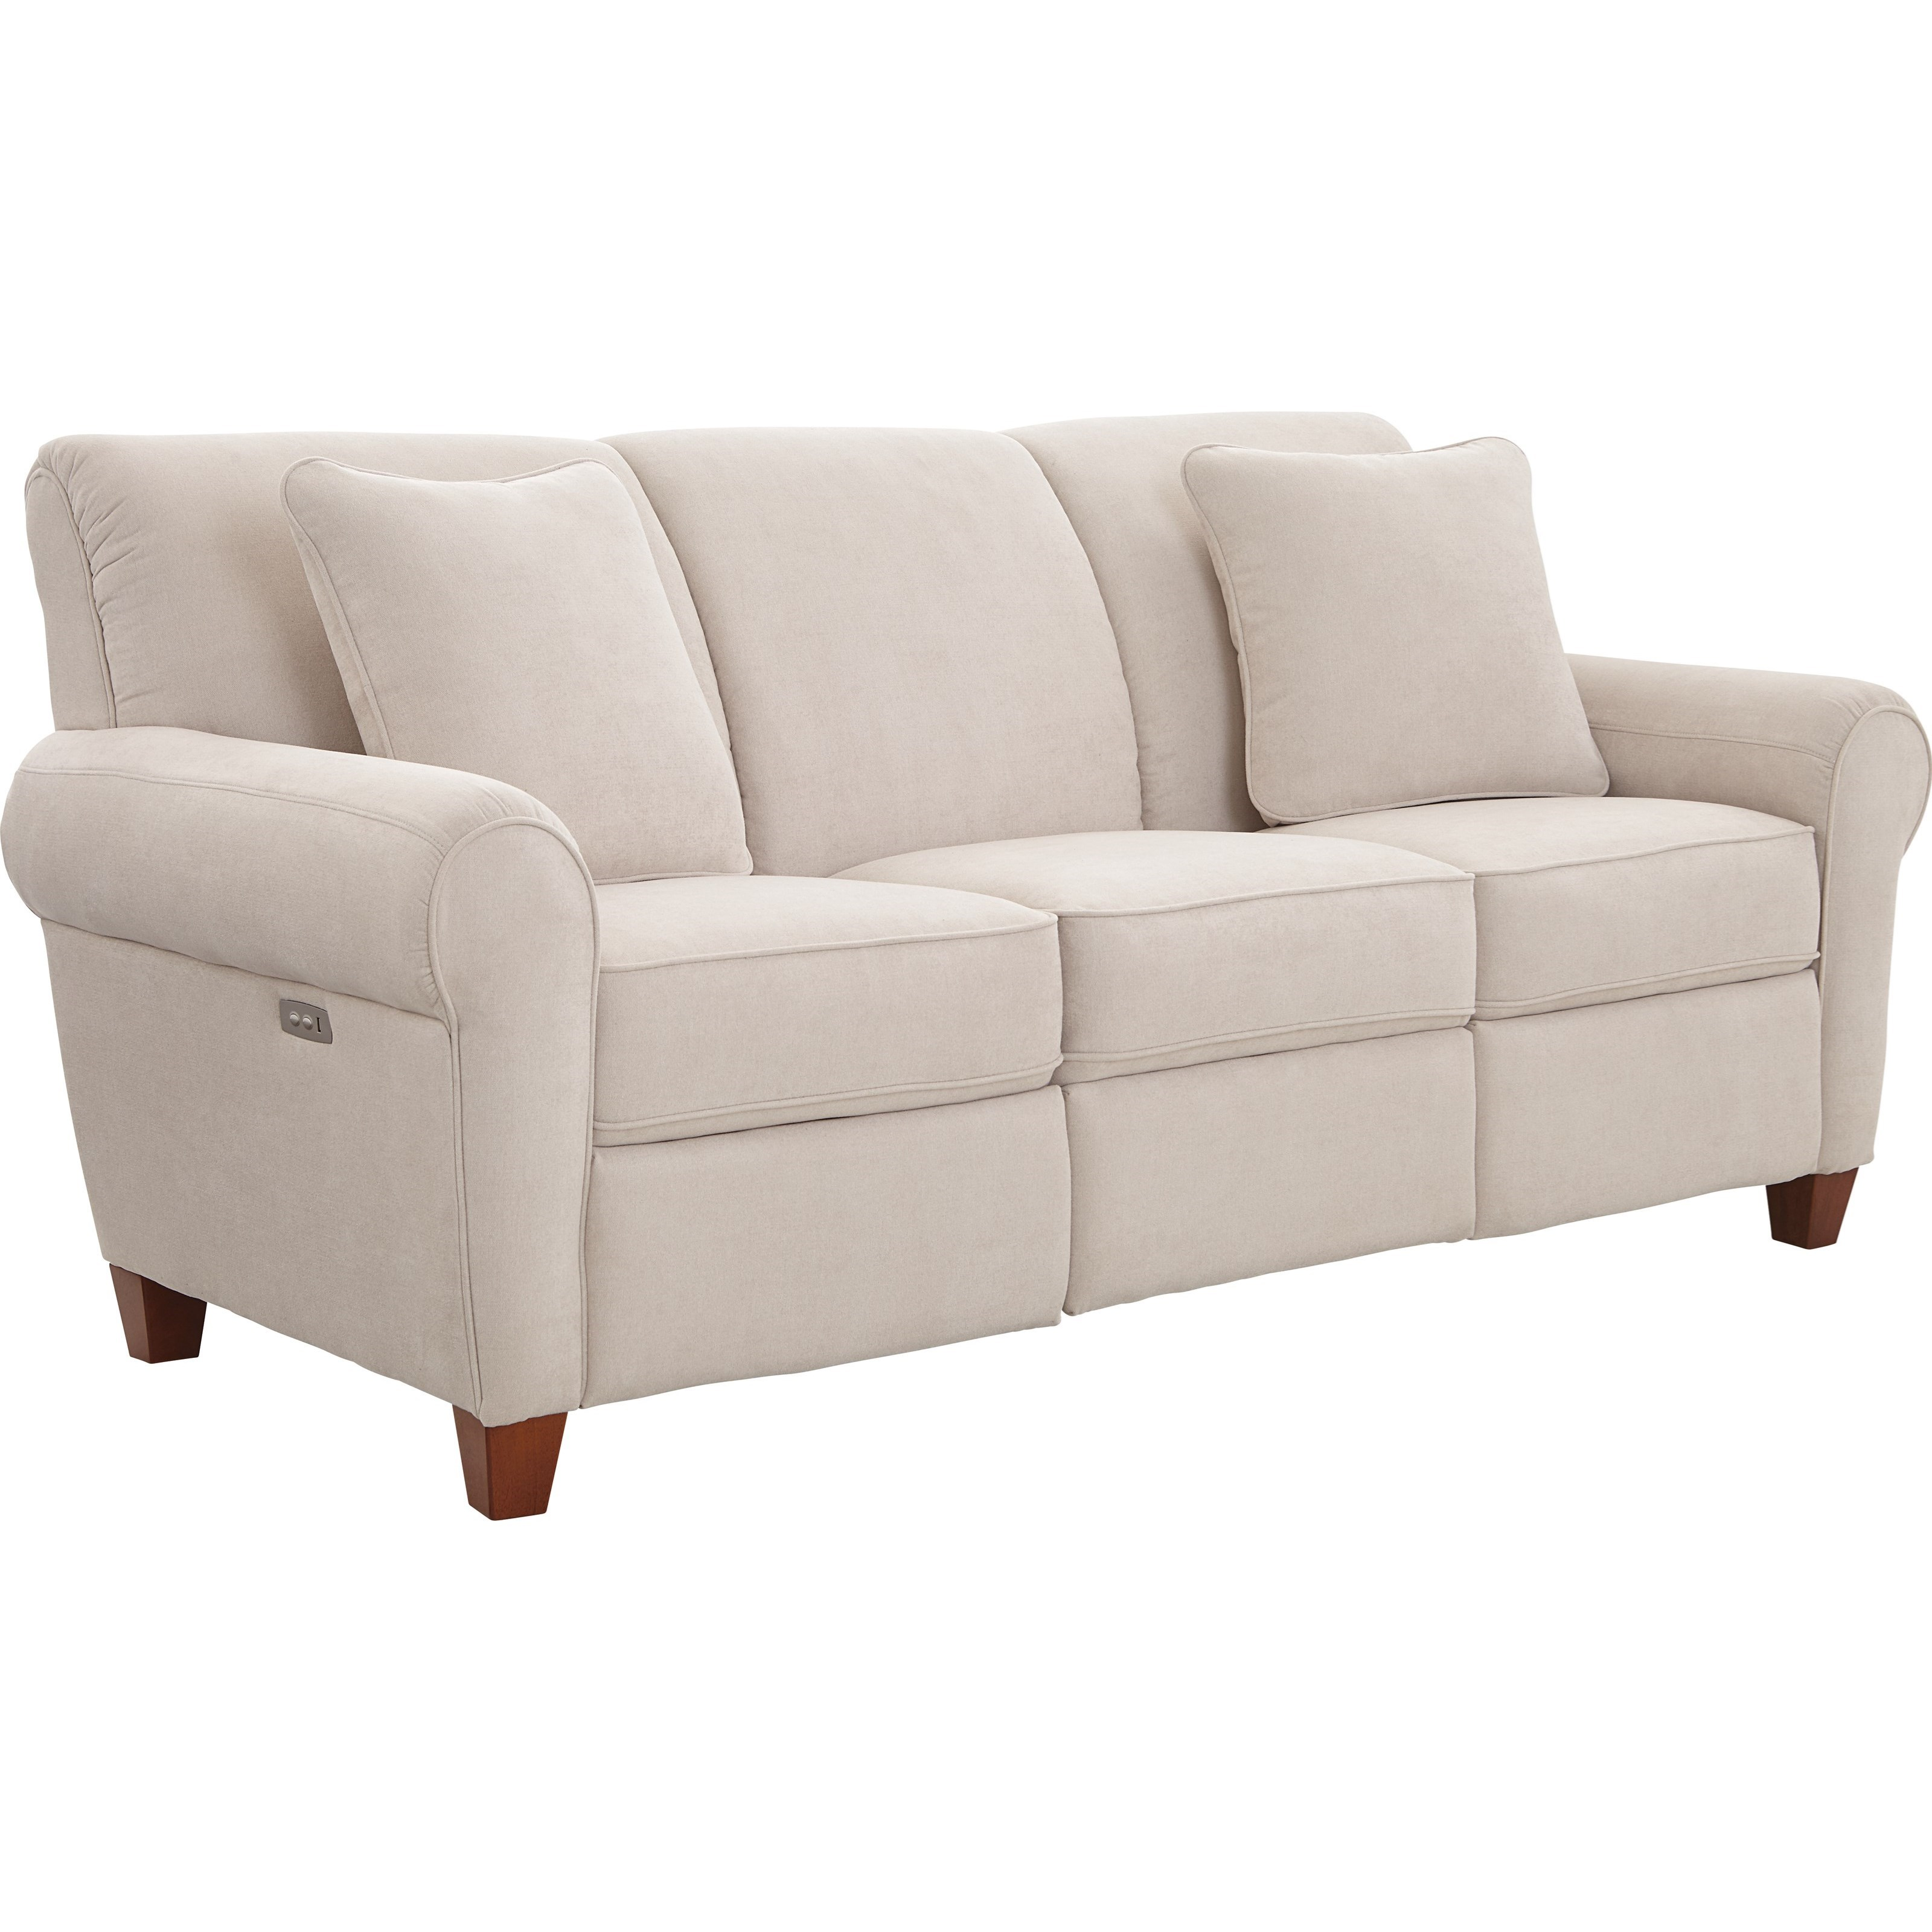 Bennett Duo™ Reclining Sofa by La-Z-Boy at Sparks HomeStore